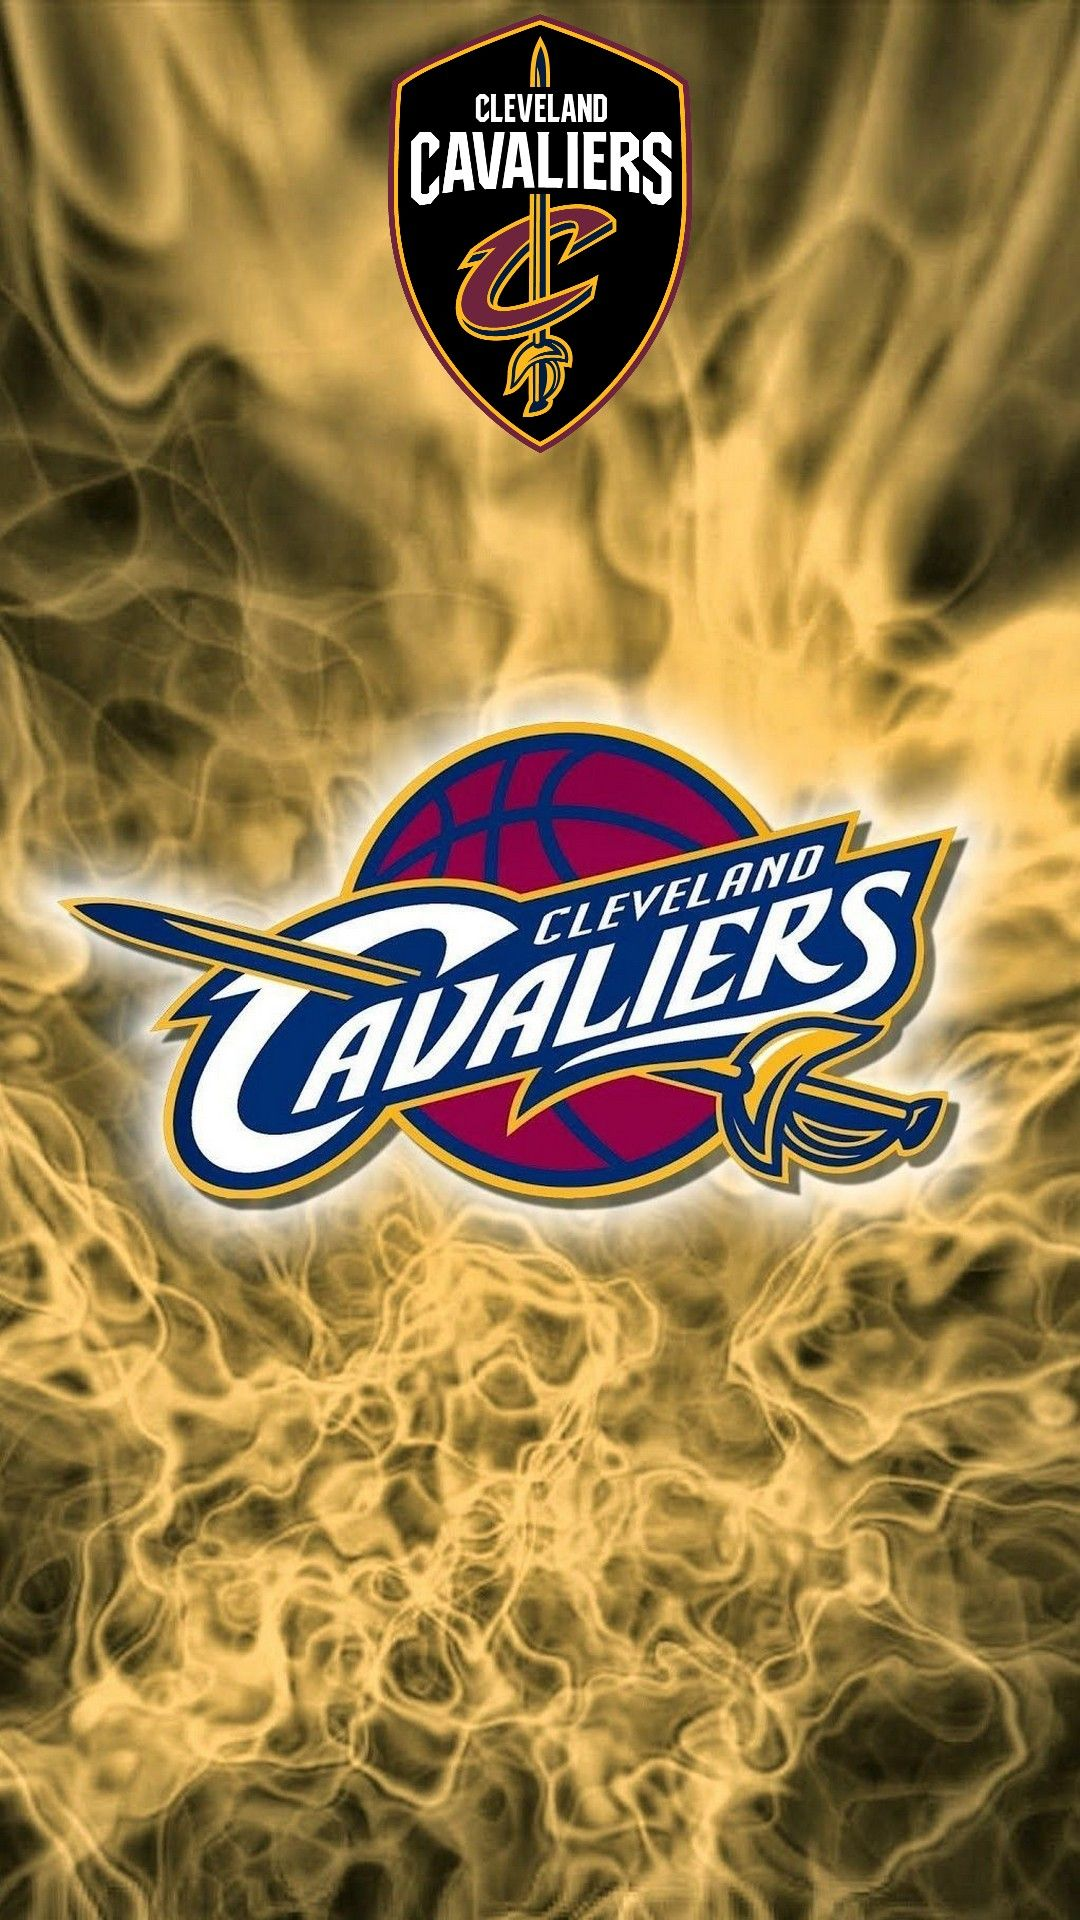 Cleveland Cavaliers Mobile Wallpaper Hd 2021 Basketball Wallpaper Hd Wallpapers For Mobile Android Wallpaper Best Wallpapers Android